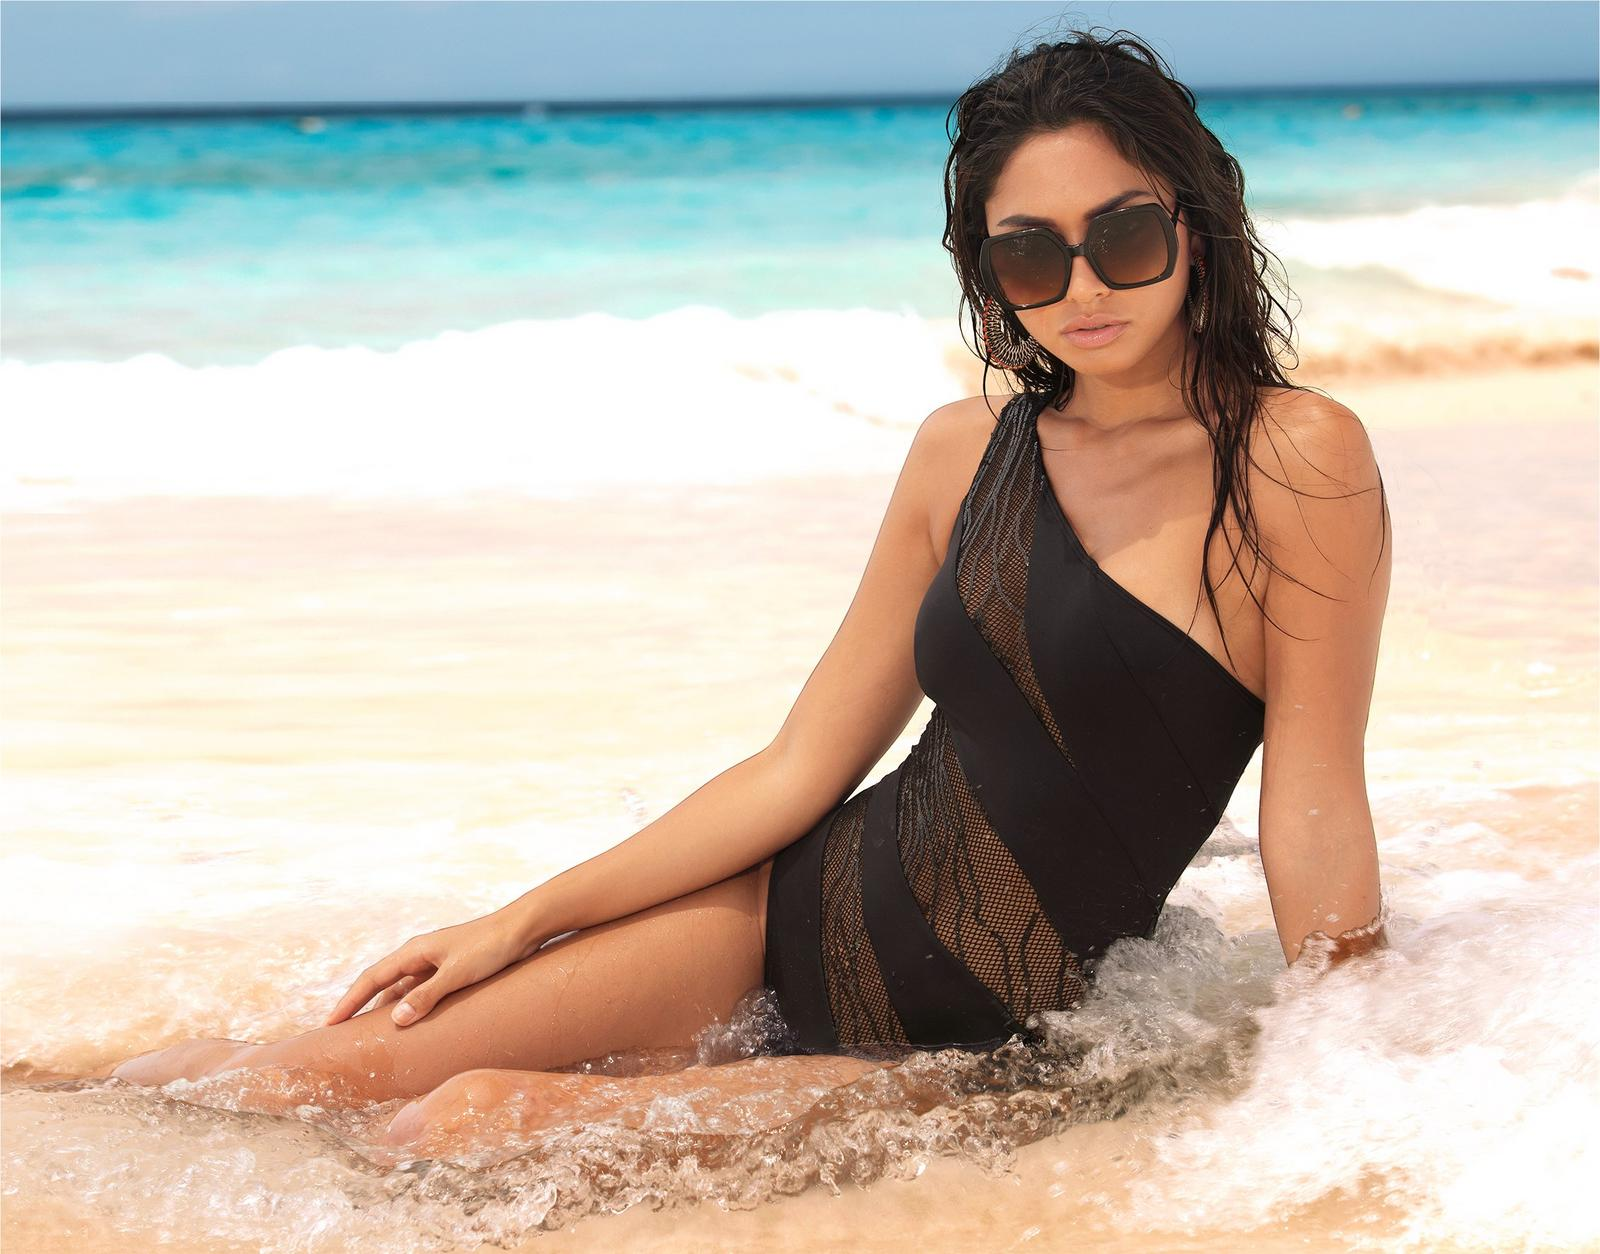 model lounging on the beach wearing a black and mesh one-shoulder one-piece swimsuit and statement sunglasses.